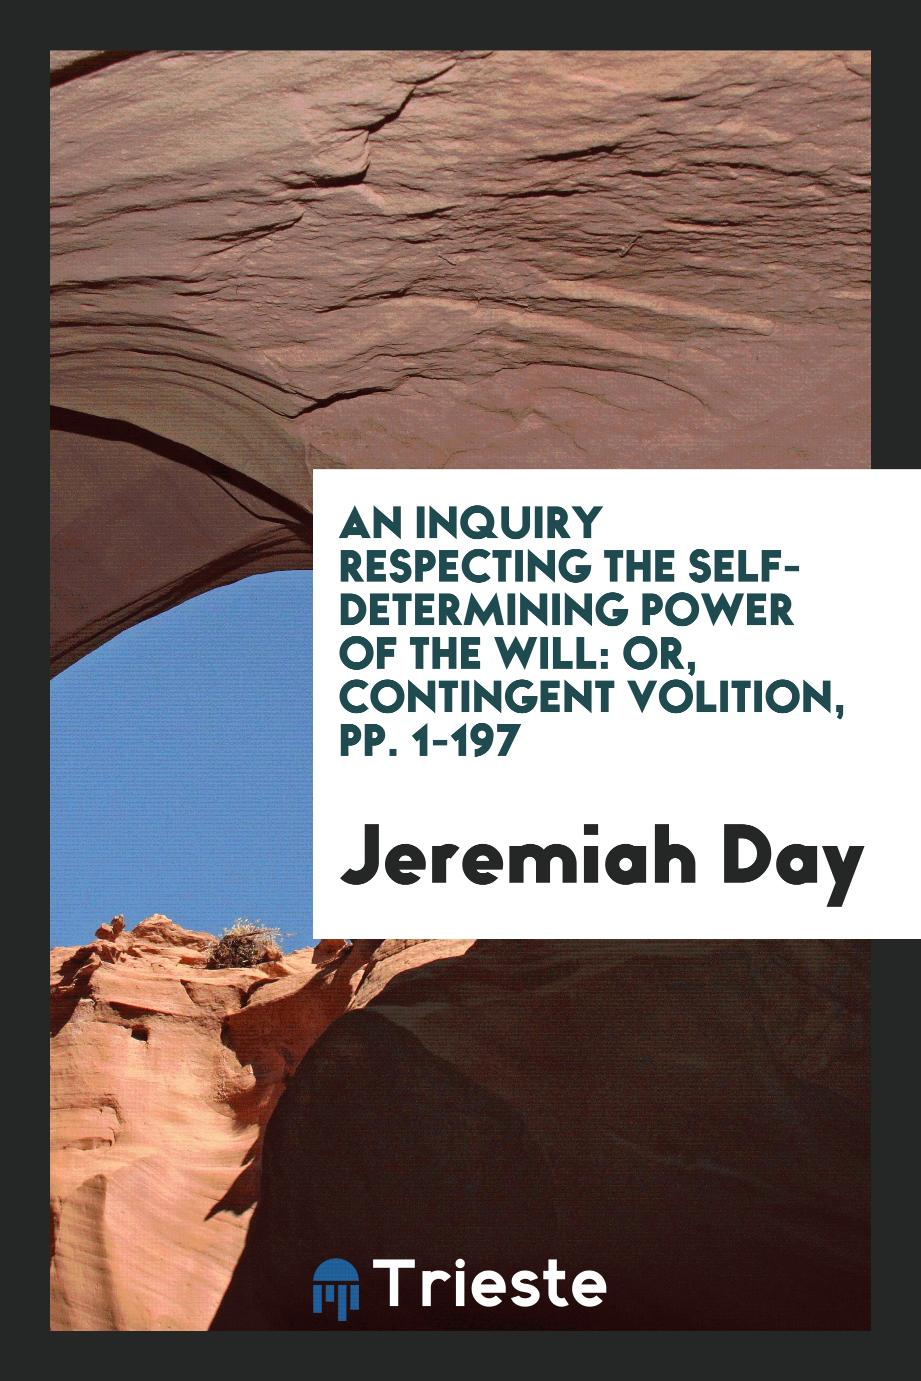 An Inquiry Respecting the Self-Determining Power of the Will: Or, Contingent Volition, pp. 1-197